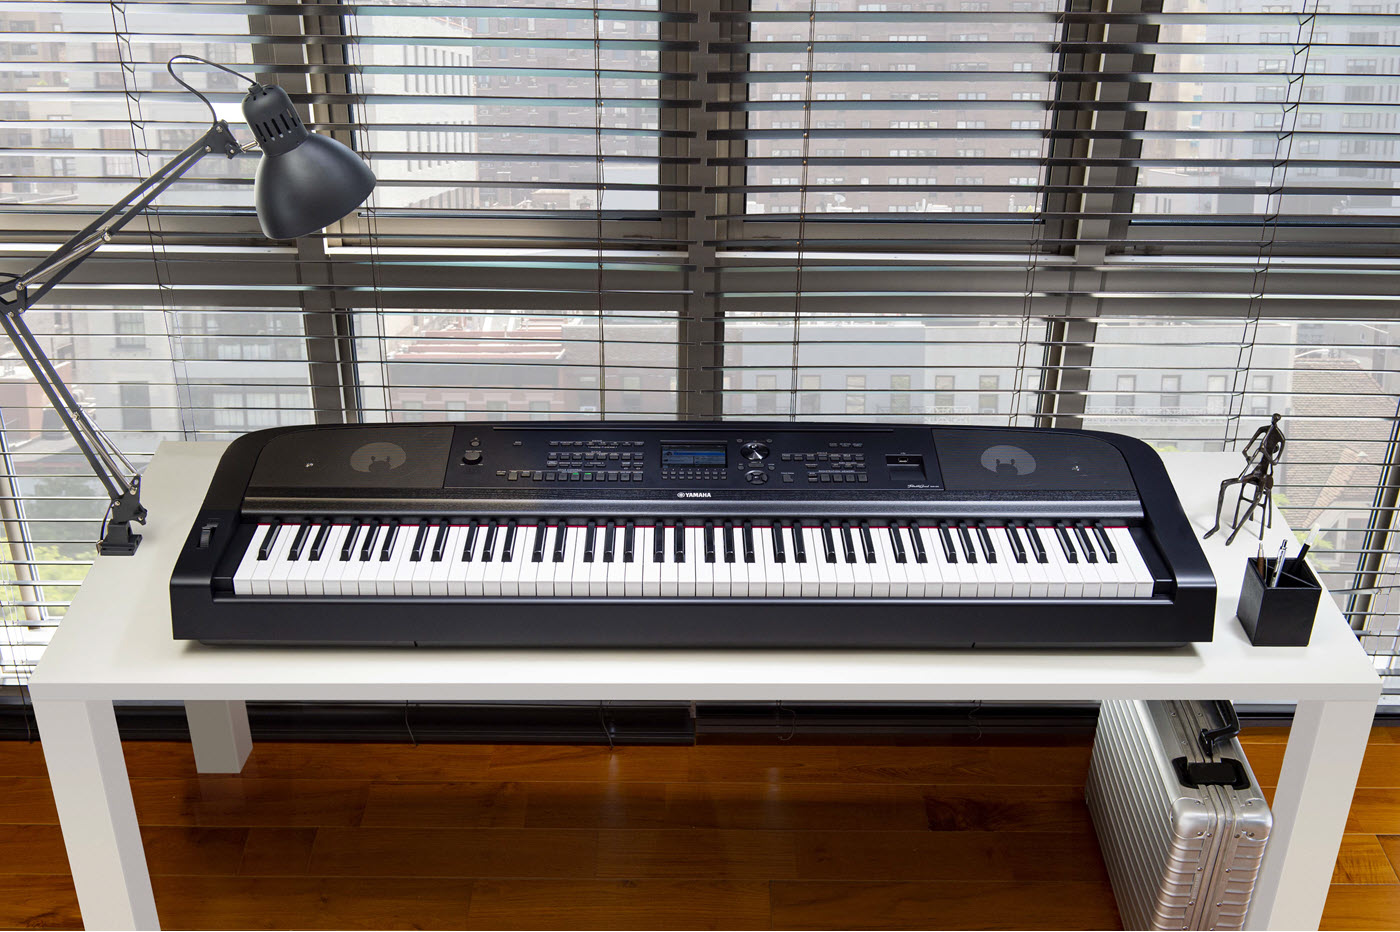 Digital piano keyboard on a desk in front of a window in a highrise apartment.